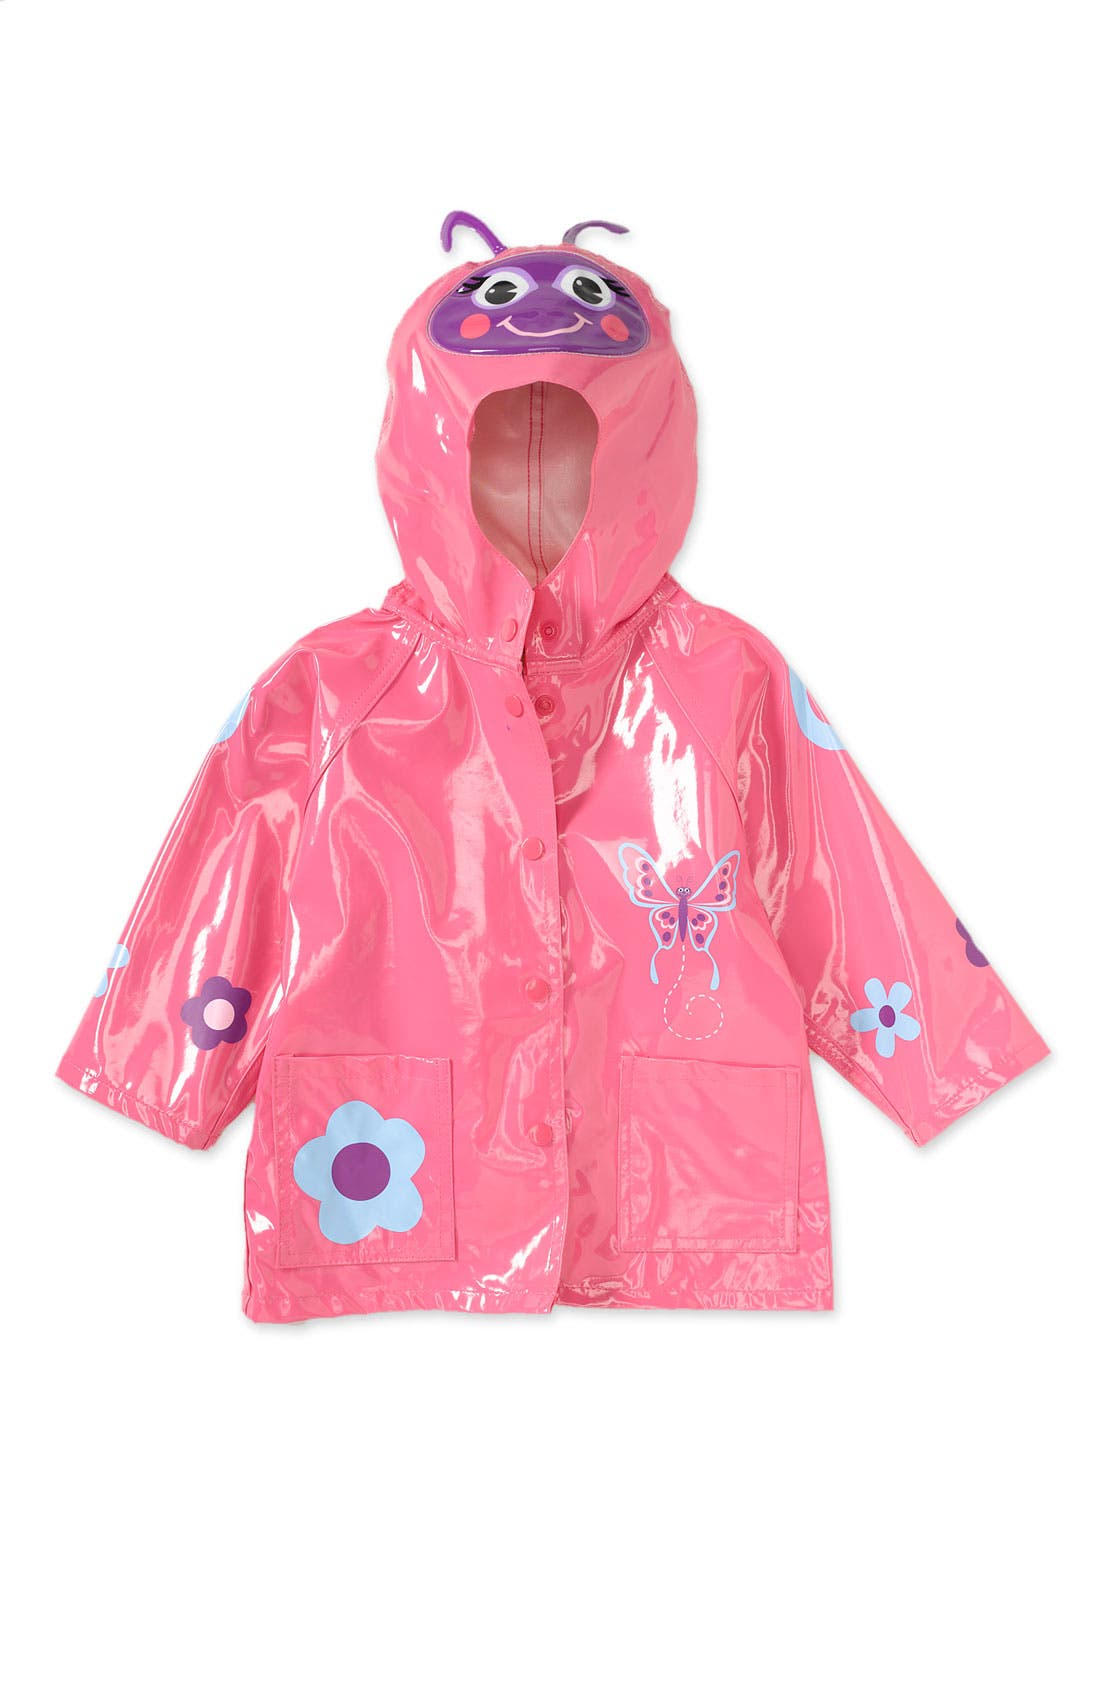 Main Image - Western Chief 'Butterfly' Raincoat (Little Kid)